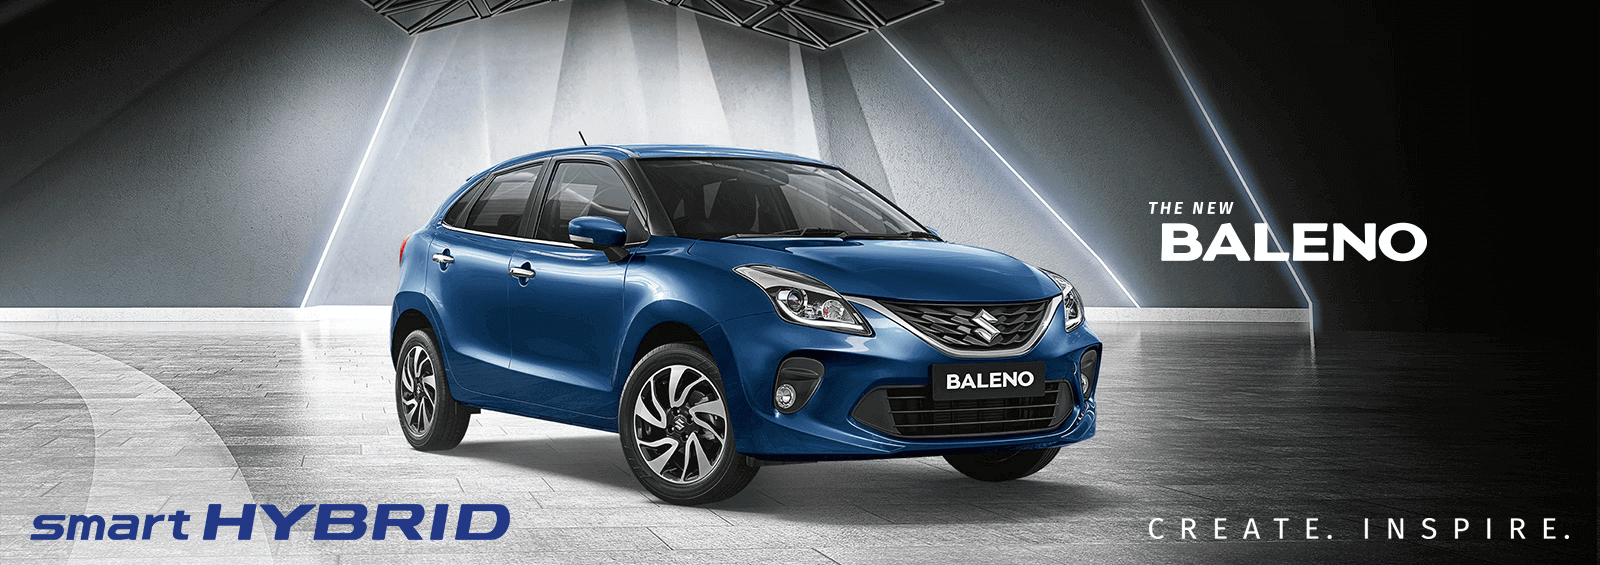 Baleno-Desktop-Banner KP AUTOMOTIVE Queens Road, Jaipur